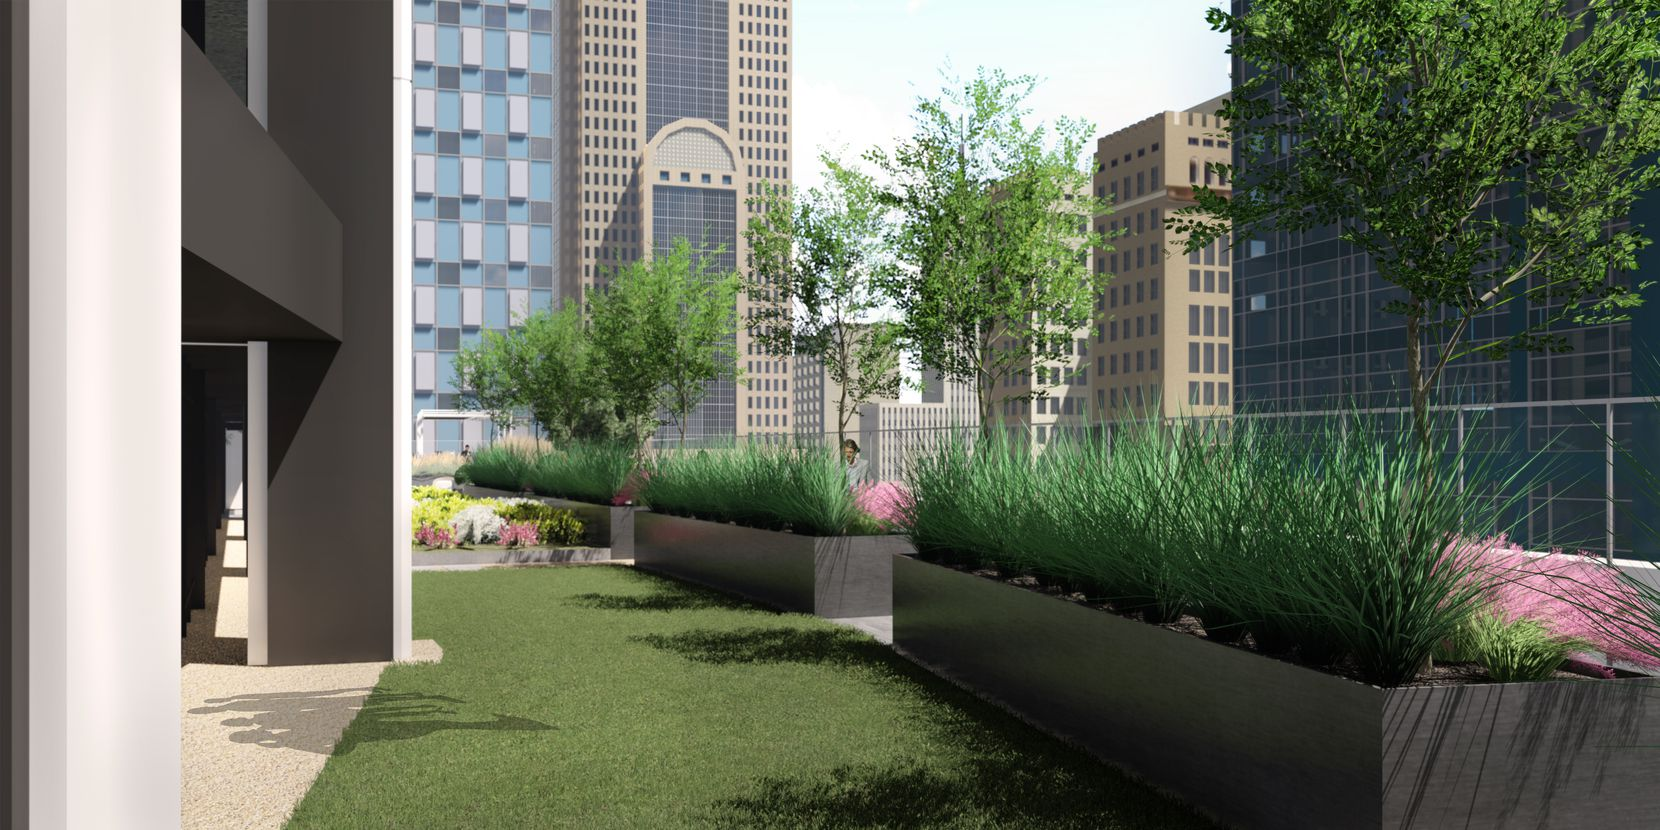 The ninth floor of The Drever tower in downtown Dallas has outdoor space.